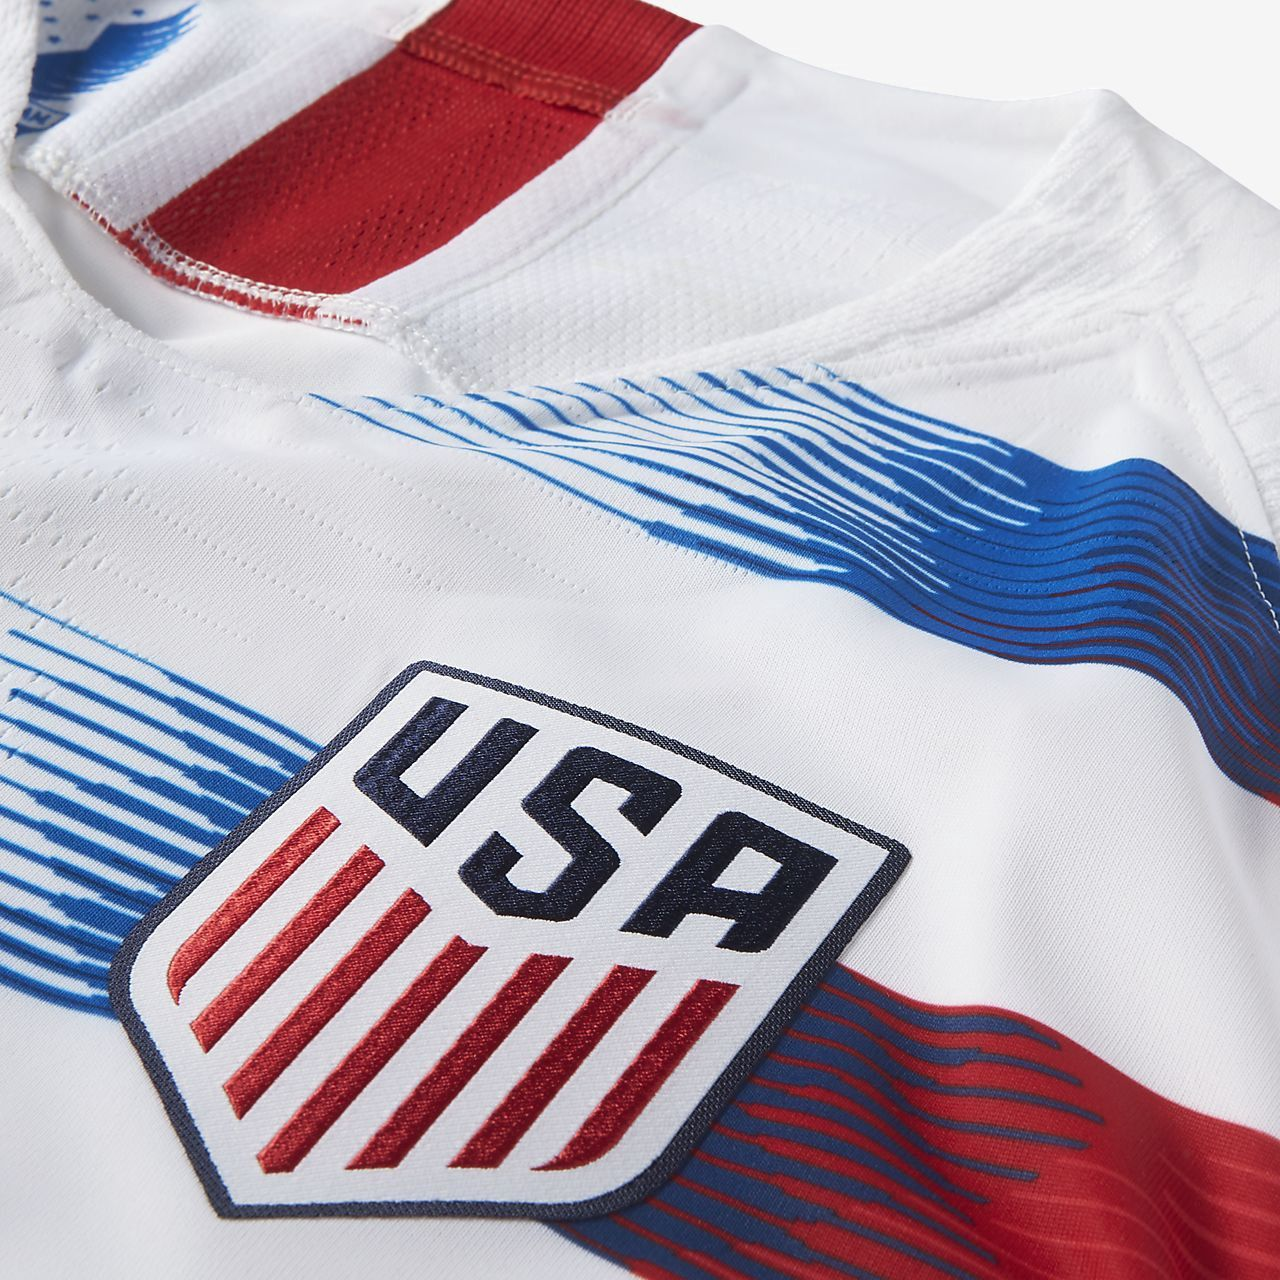 040e1c2d2 2018 u s vapor match home mens soccer jersey by nike products .